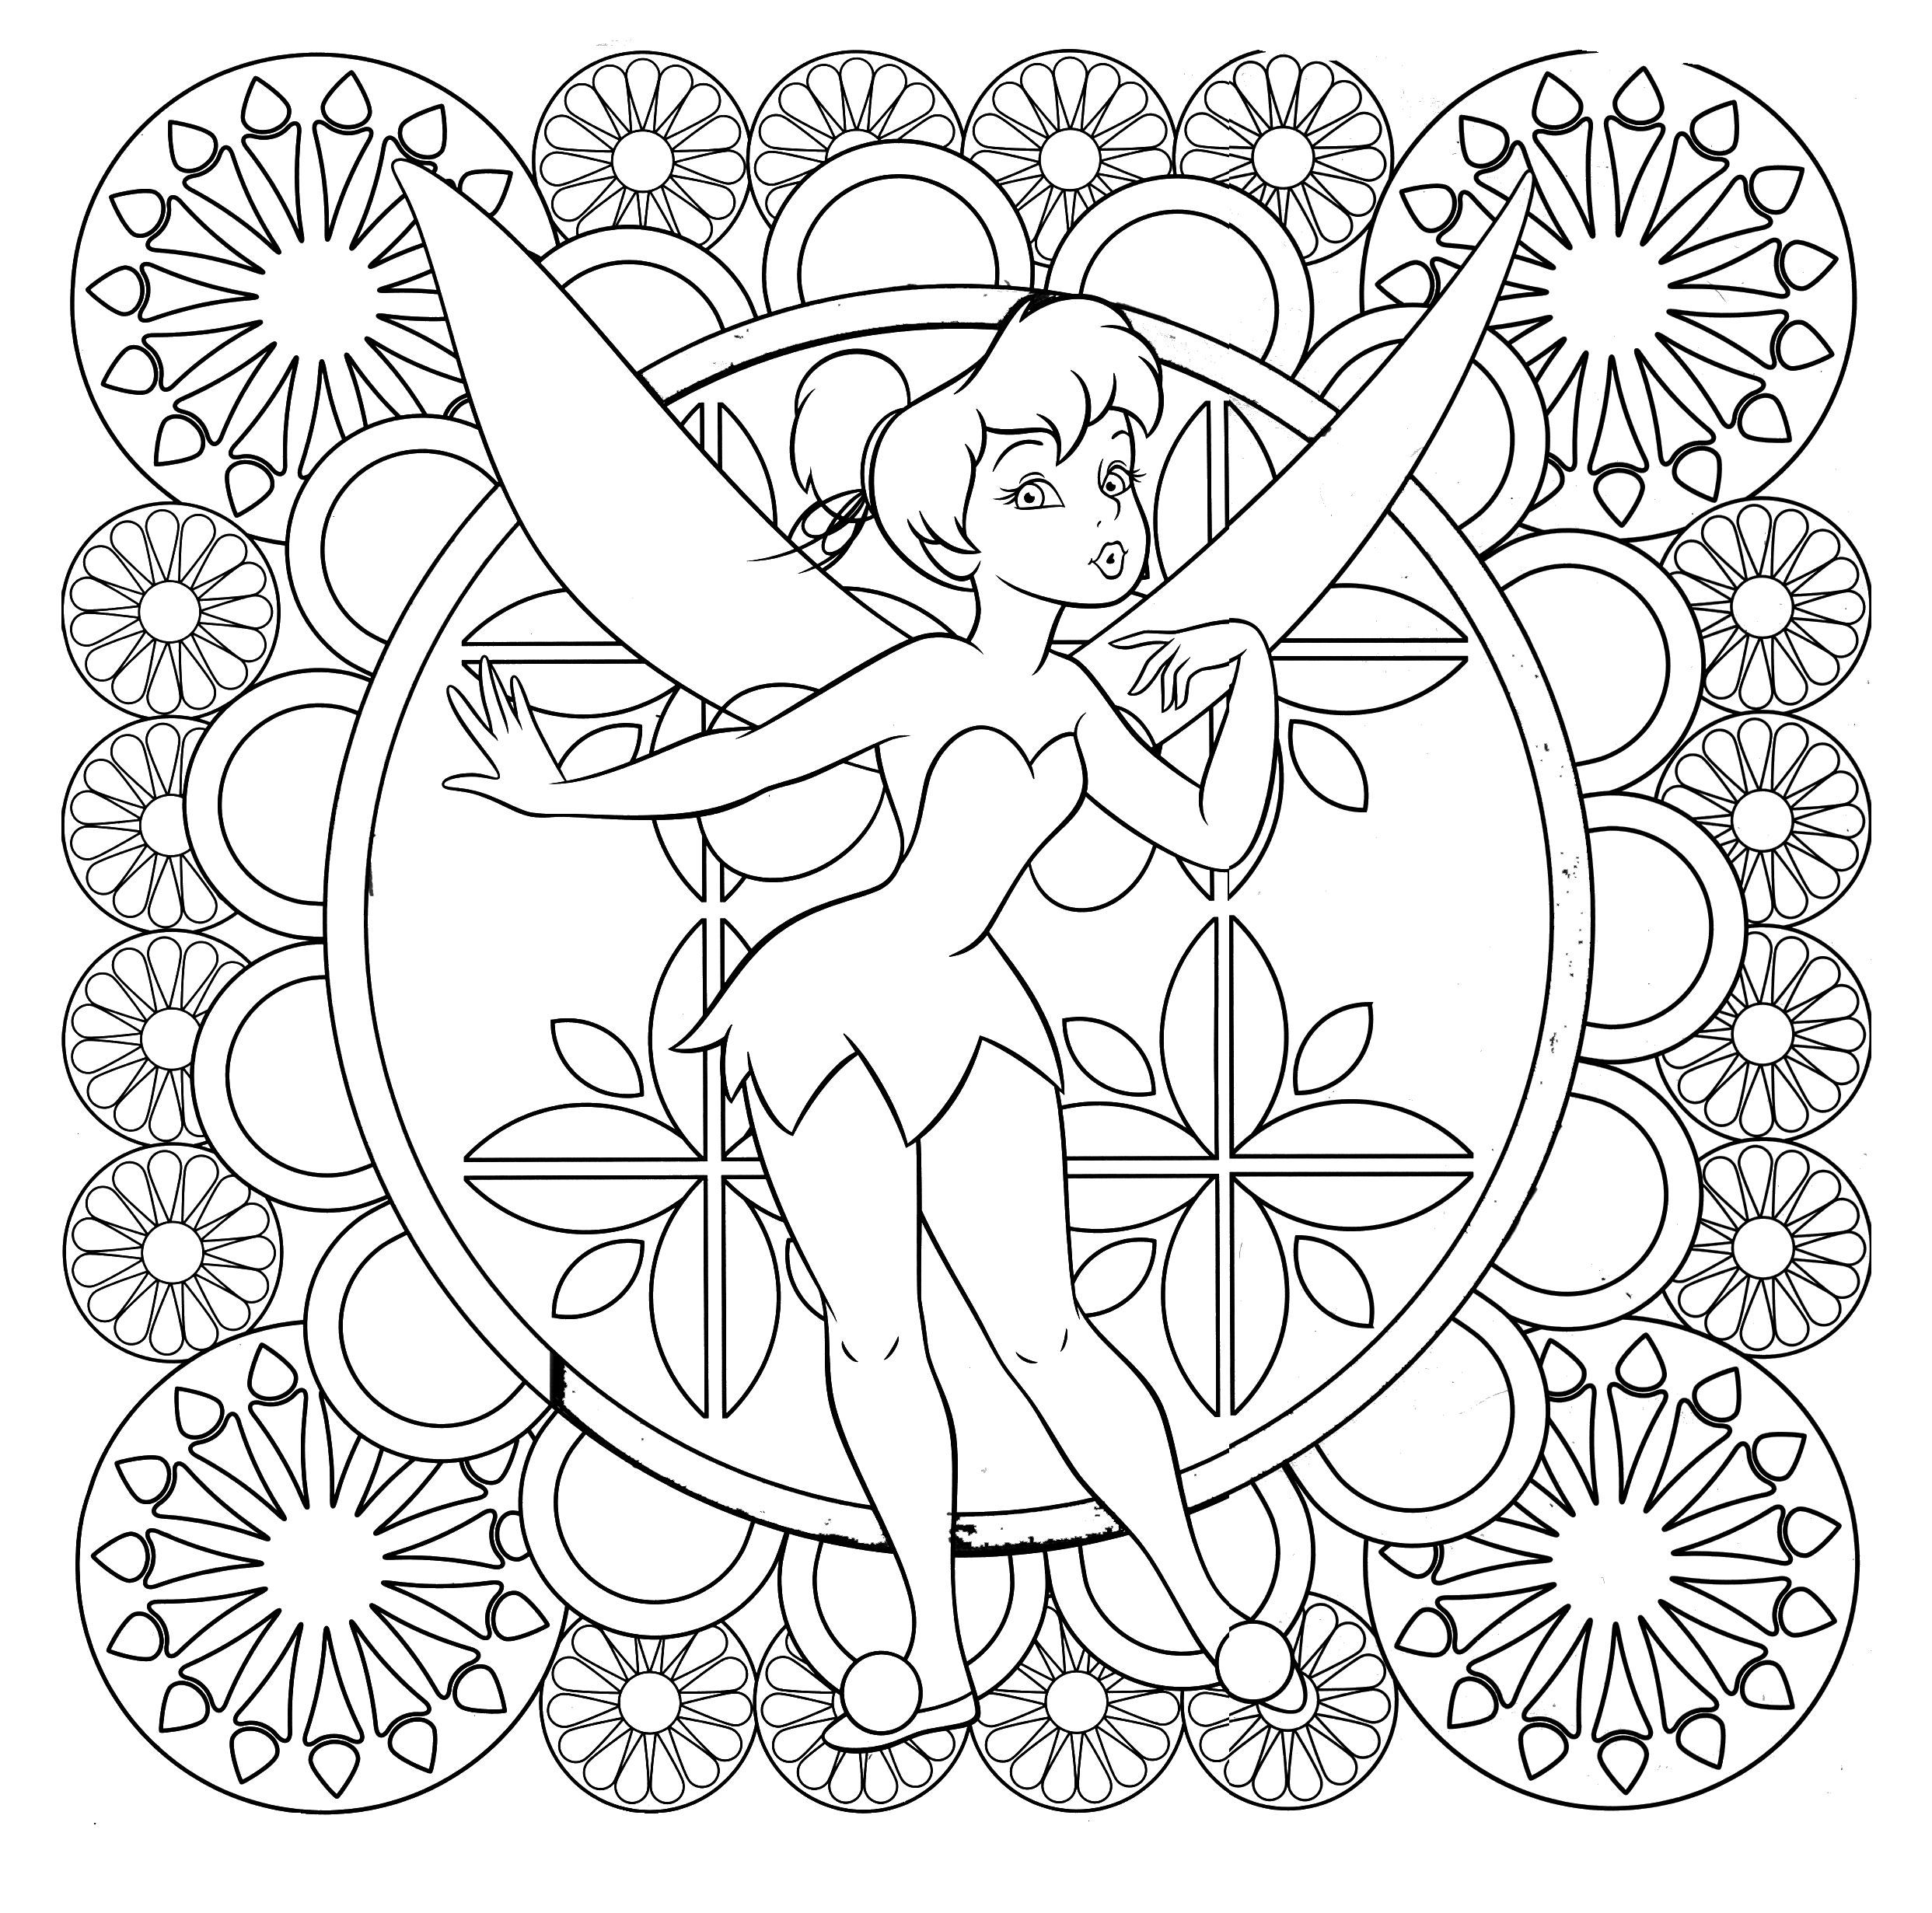 Tinkerbell Difficult Coloring Page Tinkerbell Coloring Pages Disney Coloring Pages Cinderella Coloring Pages